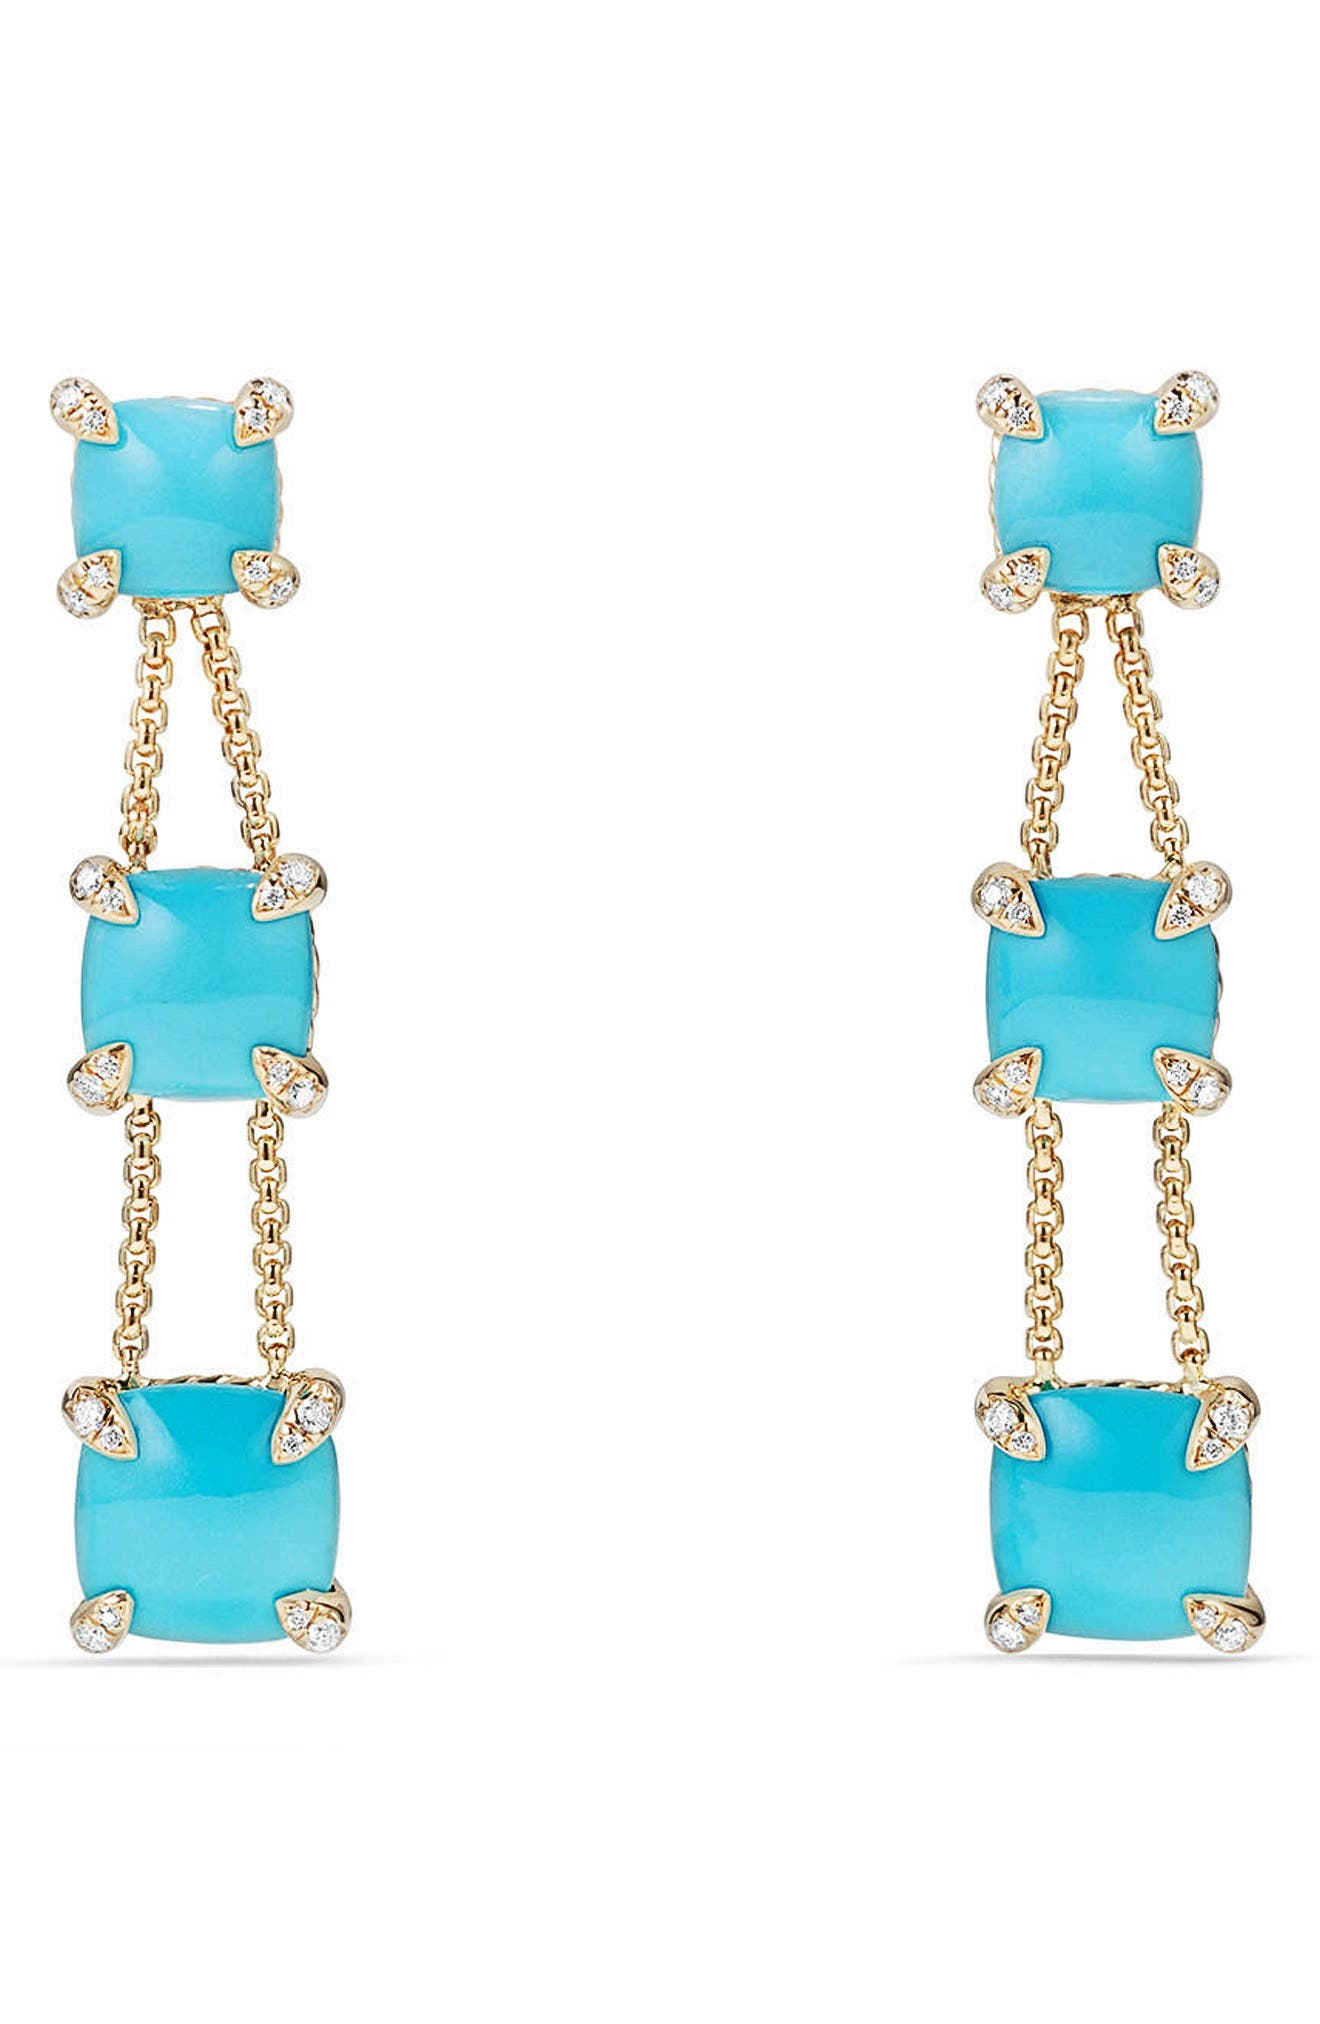 David Yurman Châtelaine Linear Chain Earrings in 18K Gold with Semiprecious Stone and Diamonds